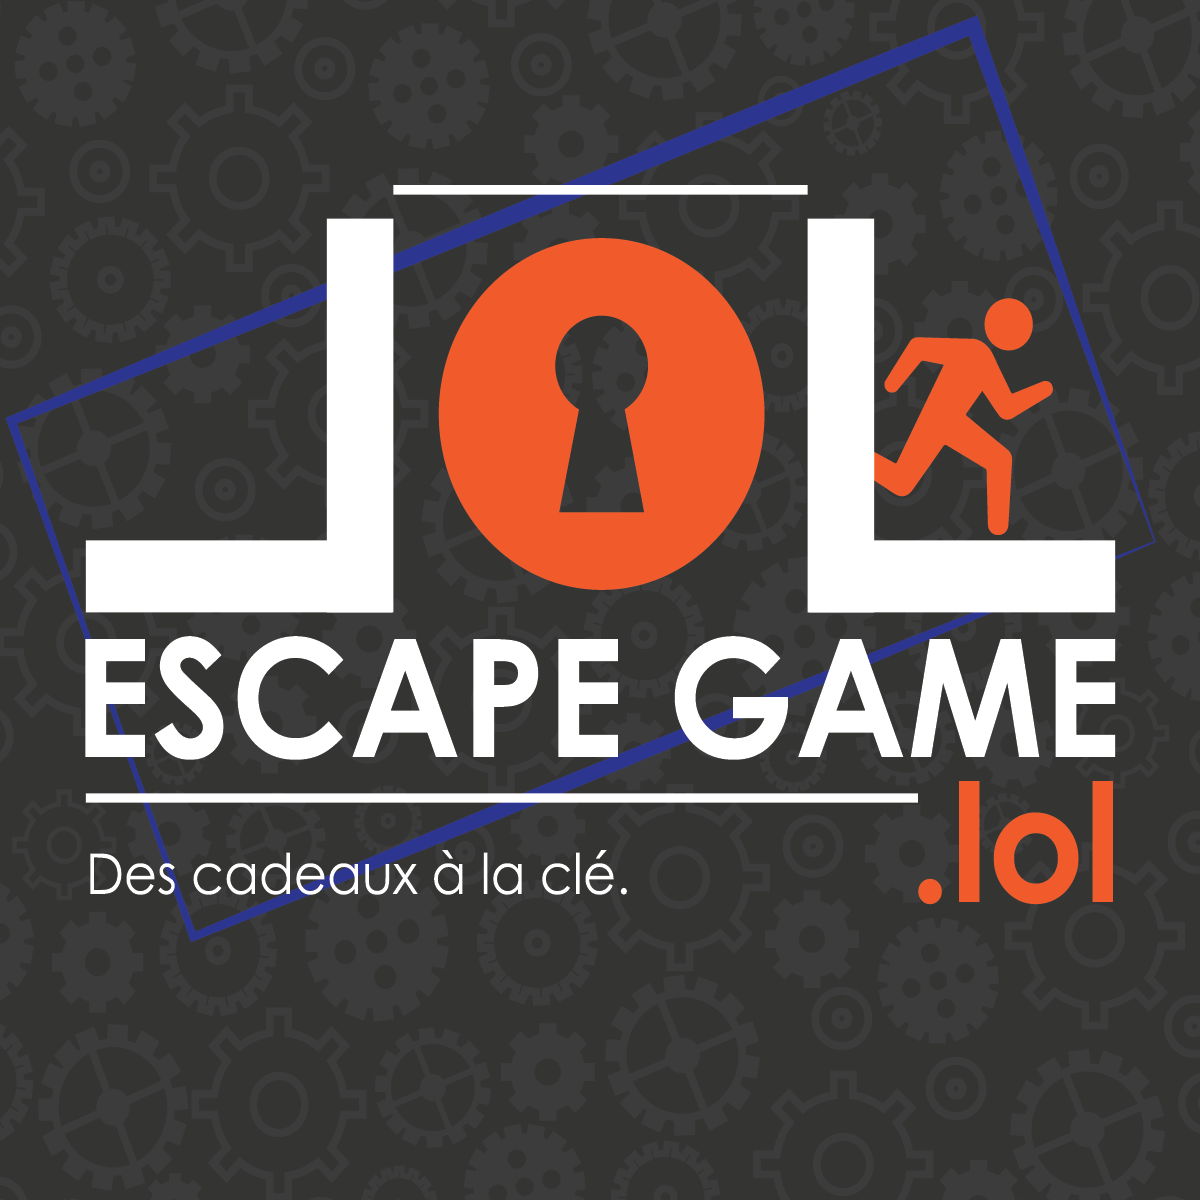 ESCAPEGAME.LOL – Escape Game Montpellier